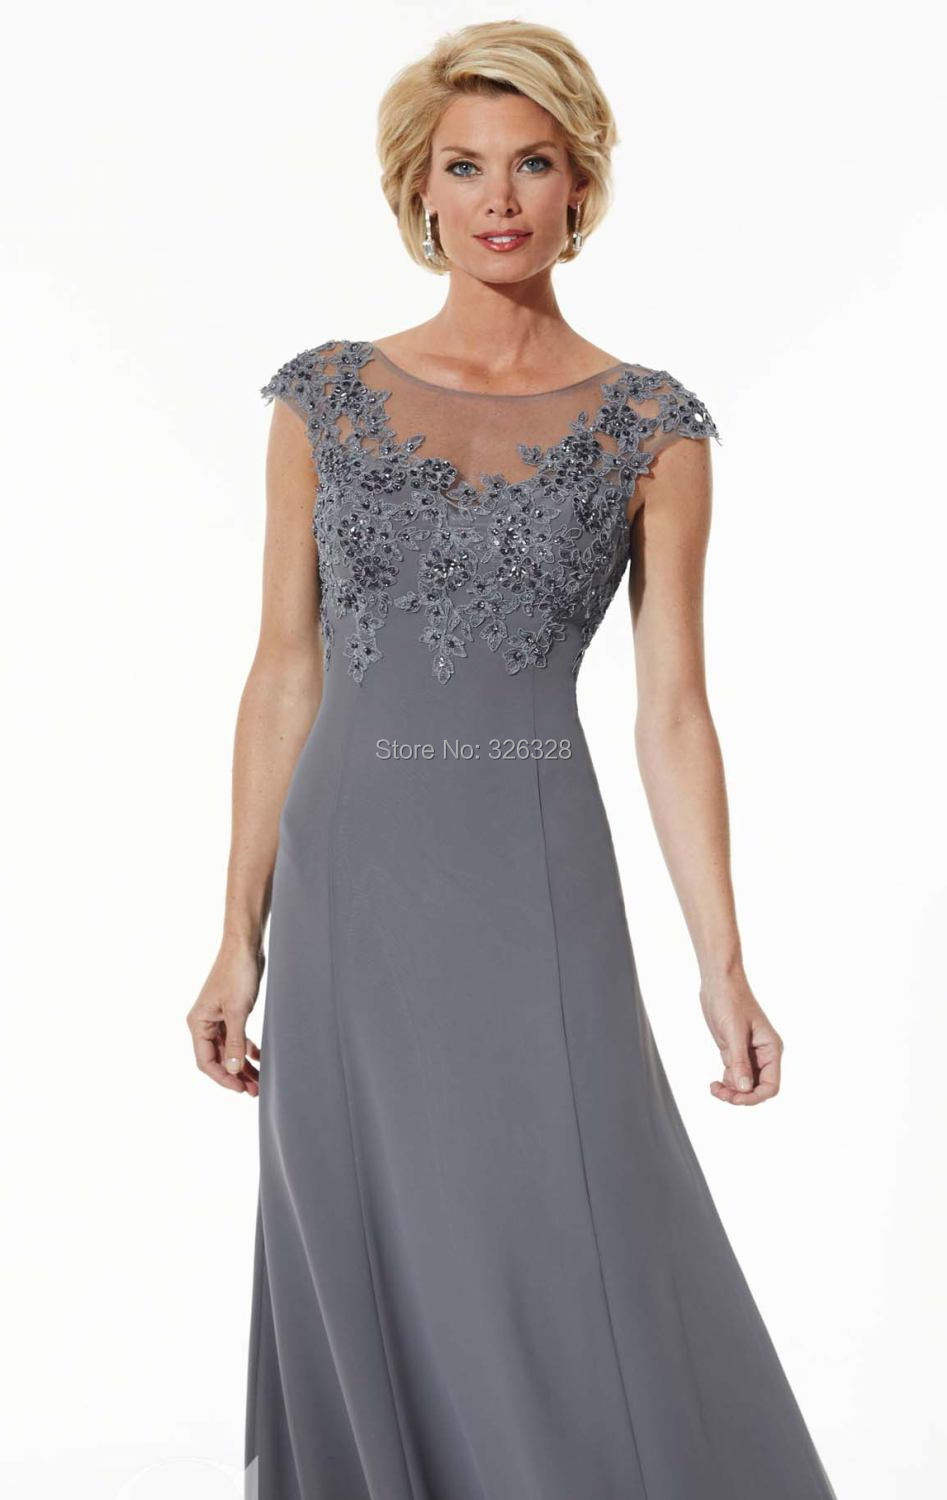 Charcoal Sheer Cap Sleeves Mother Of The Bride Dress Sleeveless ...